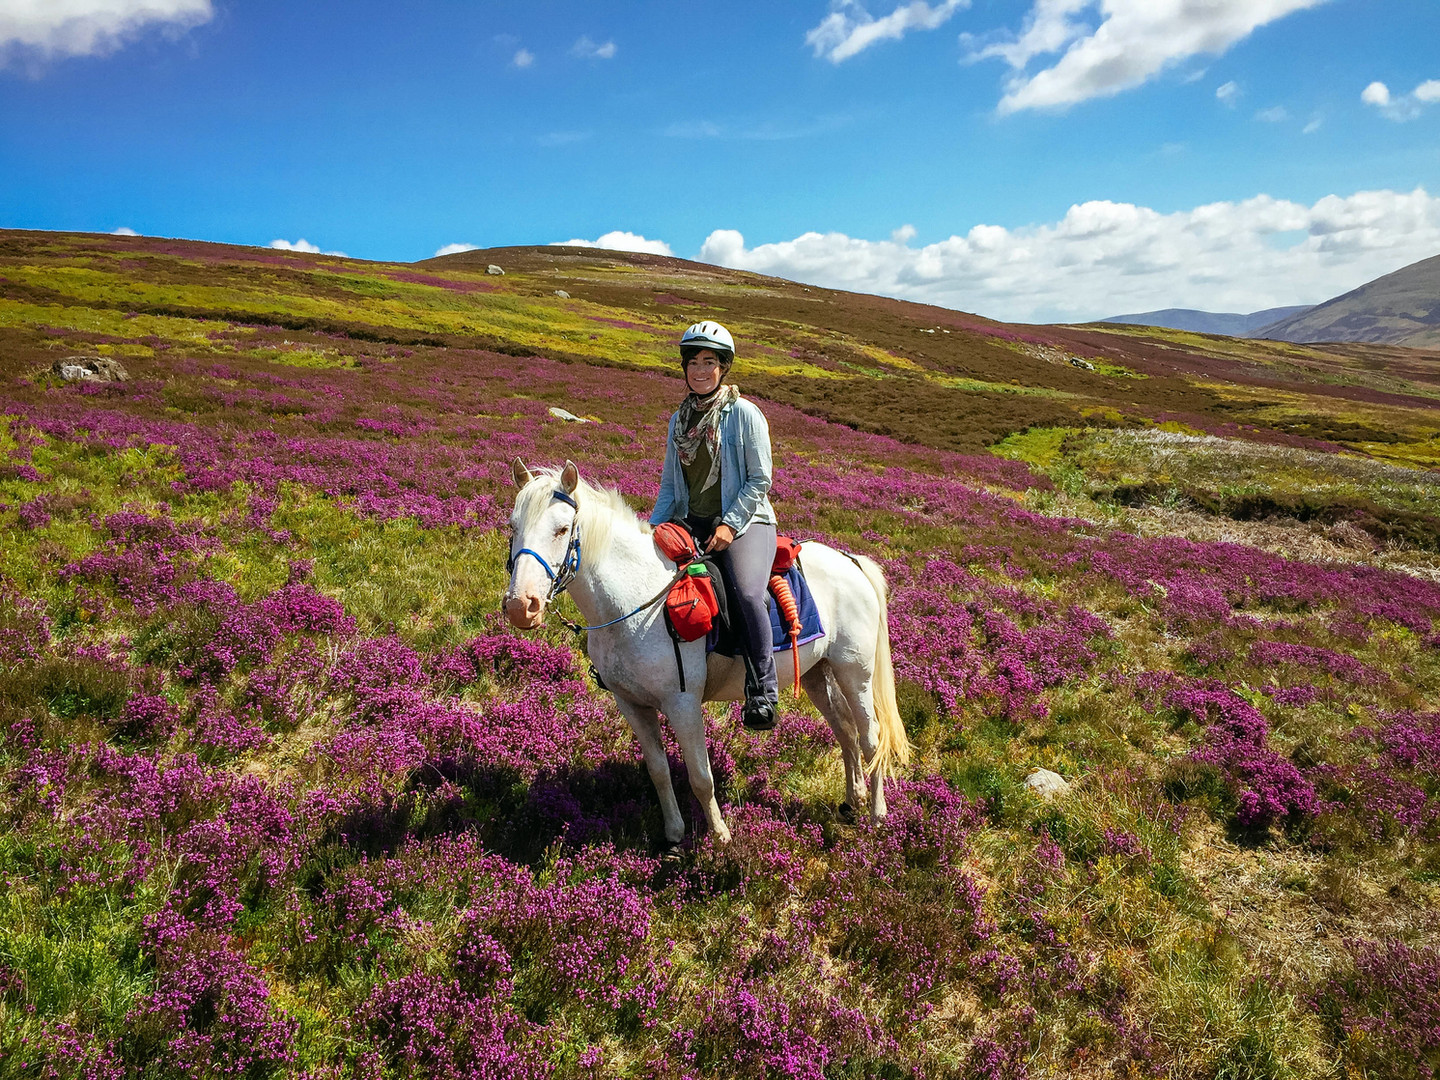 Magic in the heather